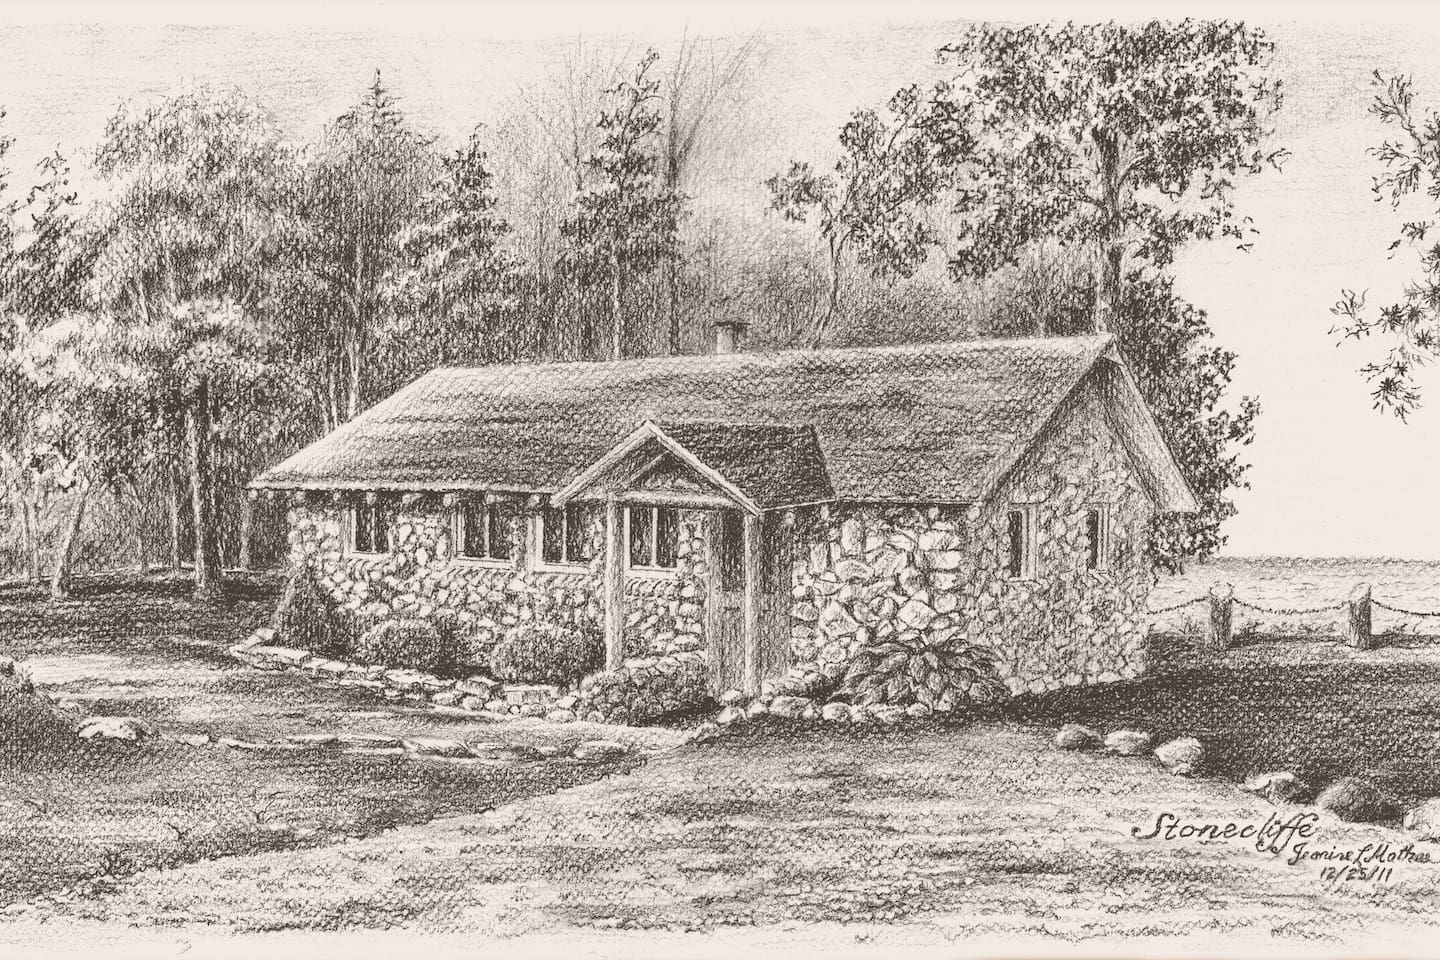 You know a place is special when it inspires fine art.  Artist:  Jeanine L. Mathes; drawn 12/25/11.